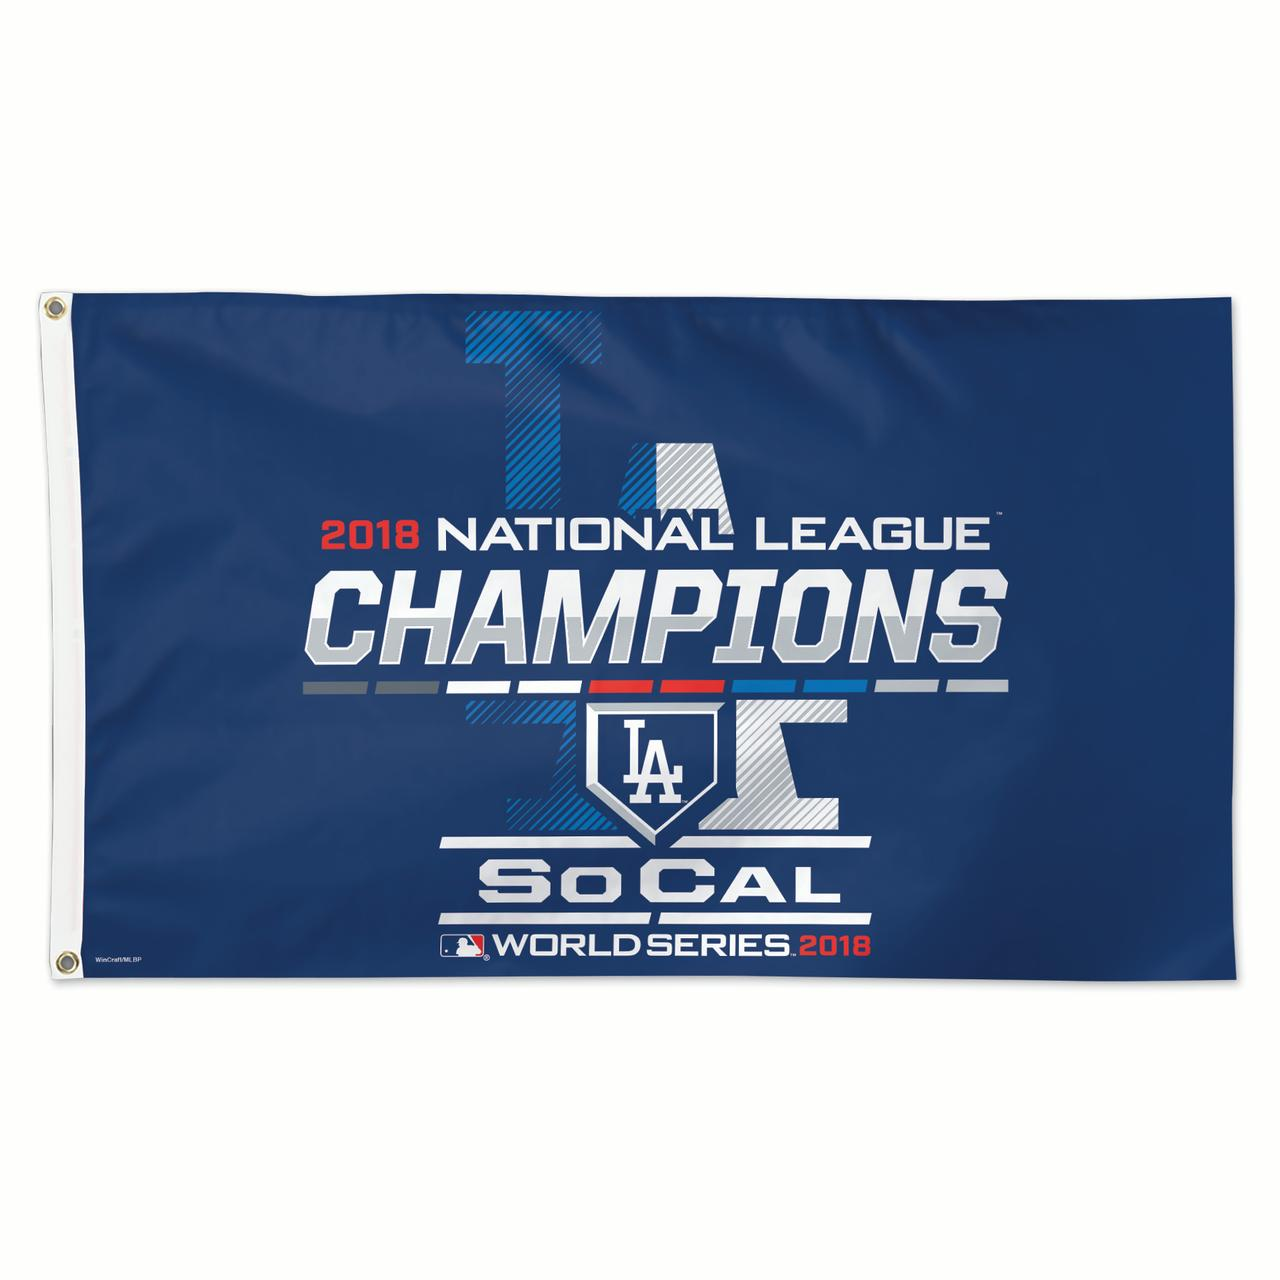 Los Angeles Dodgers WinCraft 2018 National League Champions On-Field Celebration 1-Sided 3' x 5' Deluxe Flag - No Size